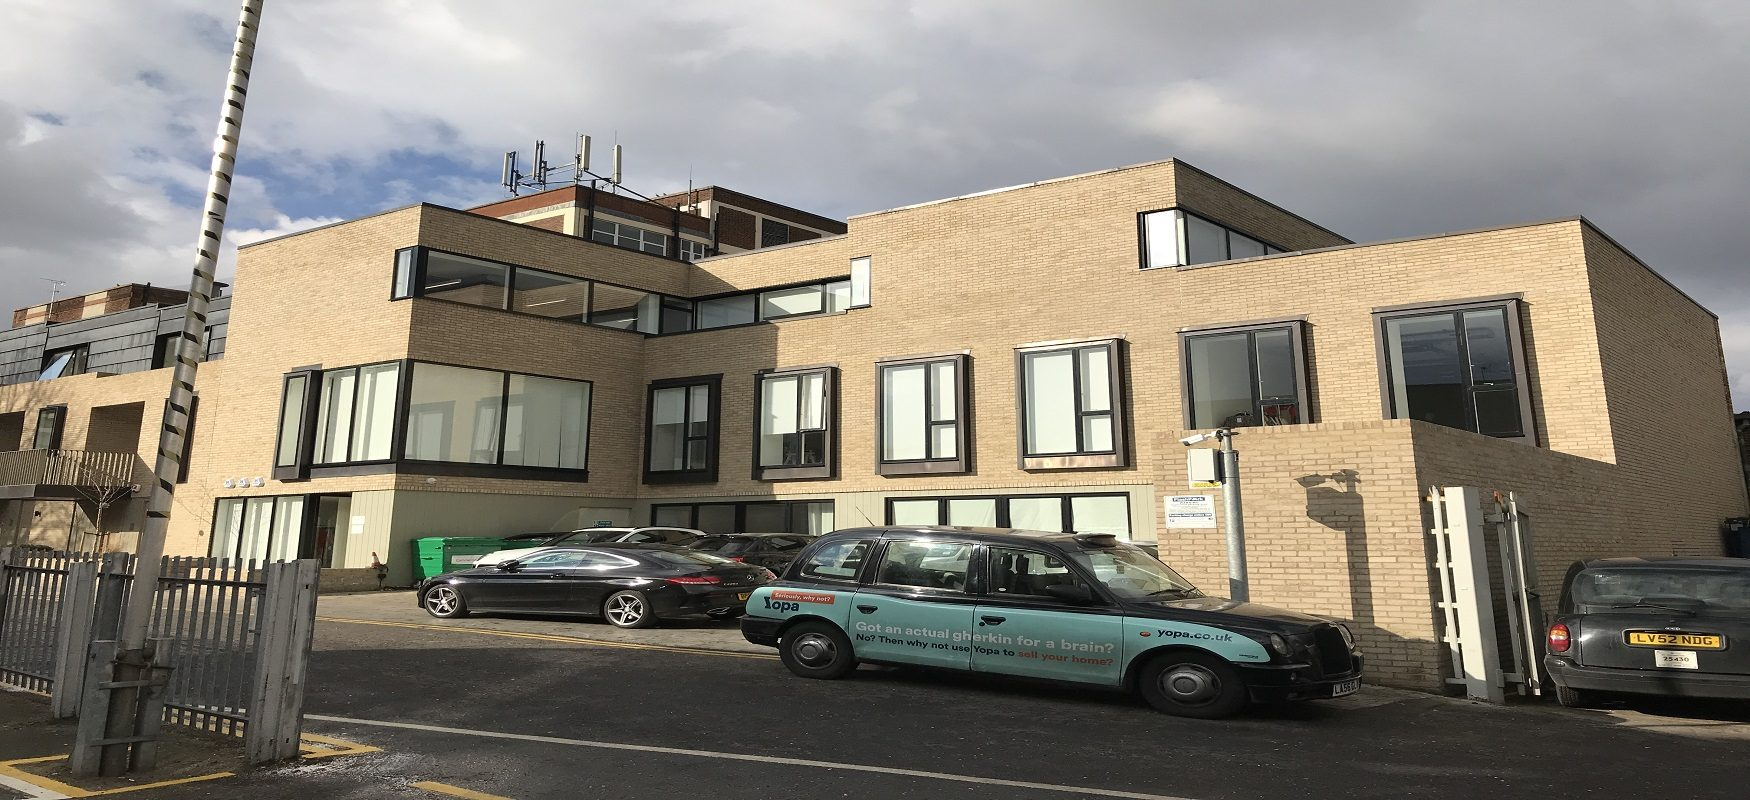 GROUND FLOOR OFFICES WITH PARKING – TO LET